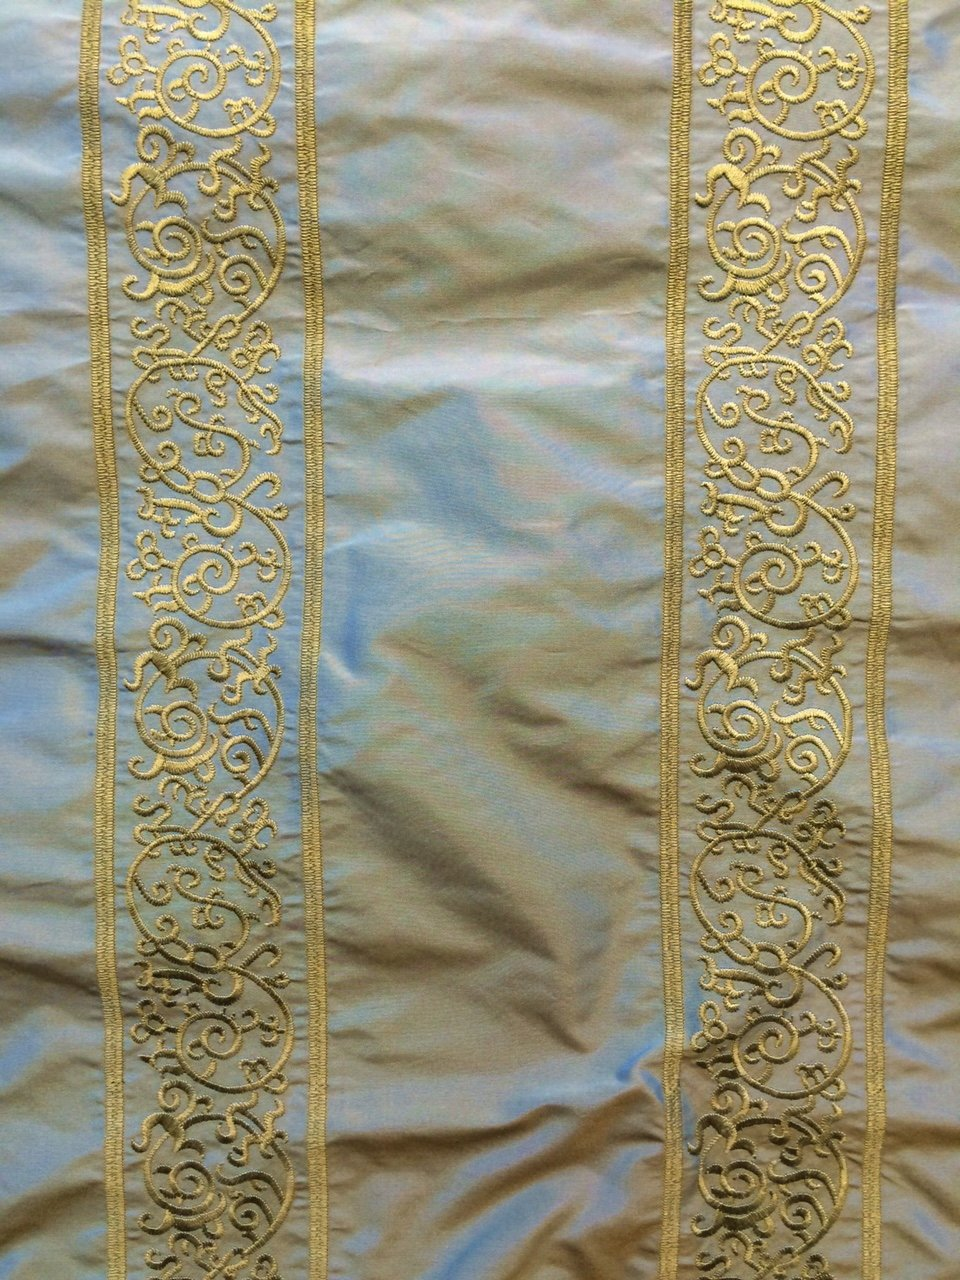 Gold Embroidered Stipes on an Ether Silk Background